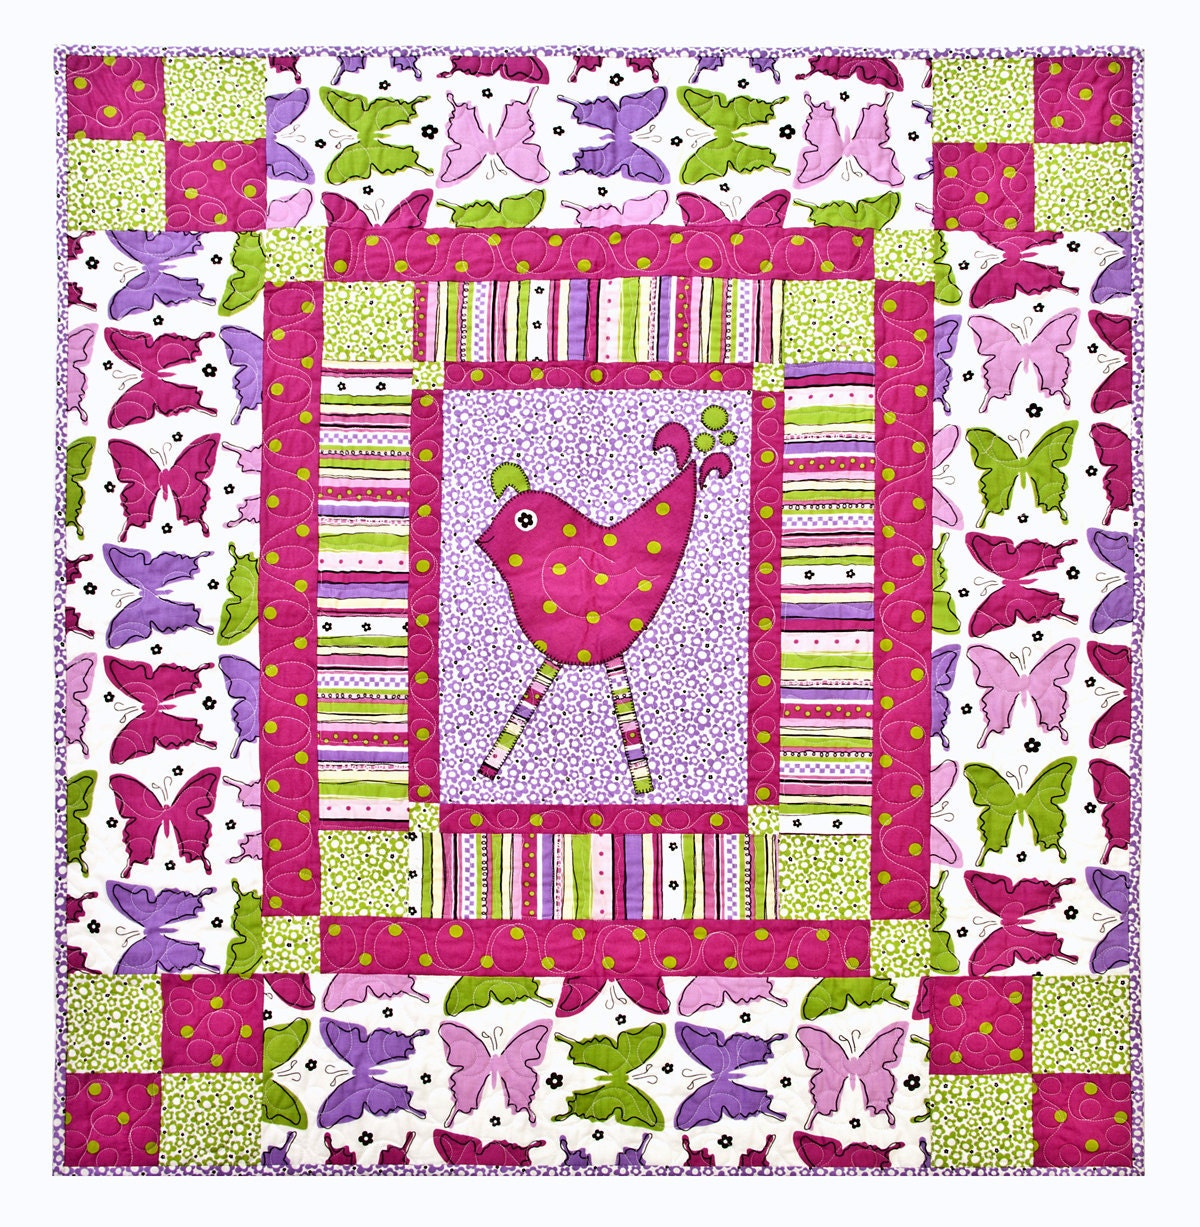 1000+ images about Four patch on Pinterest Patterns, Crib quilts and Quilt kits